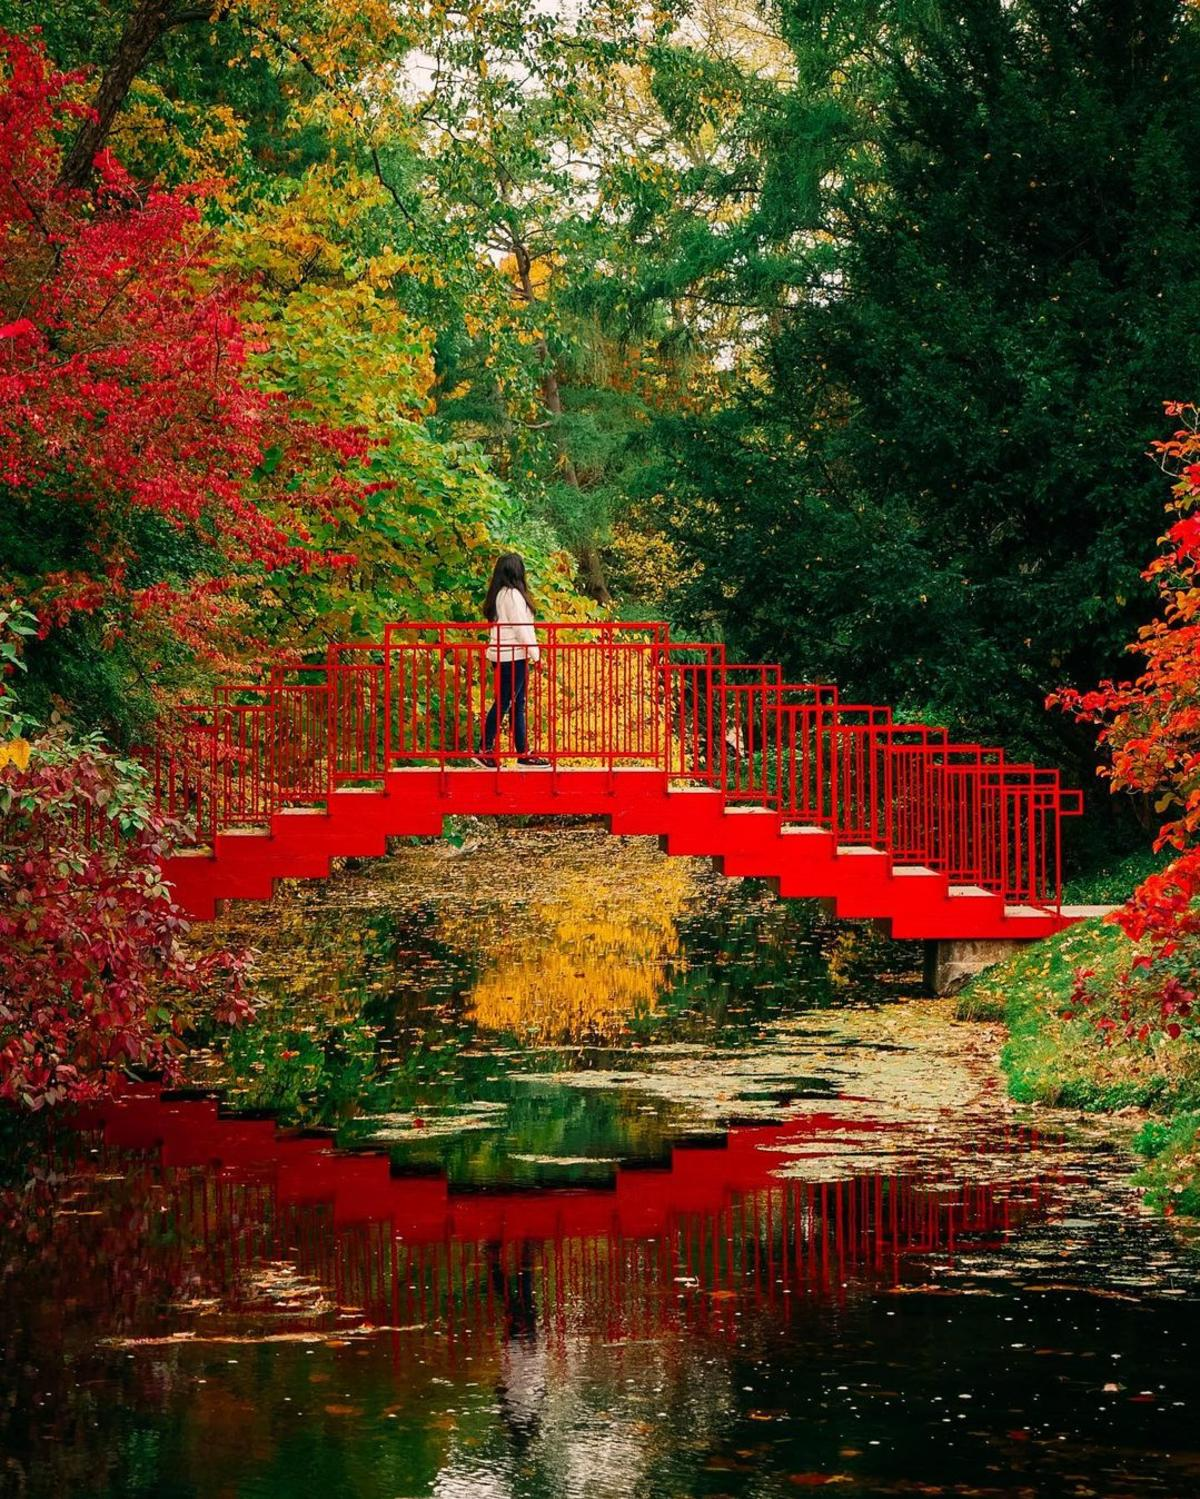 Woman walking over the Red Bridge with it reflecting on the water at Dow Gardens in Midland